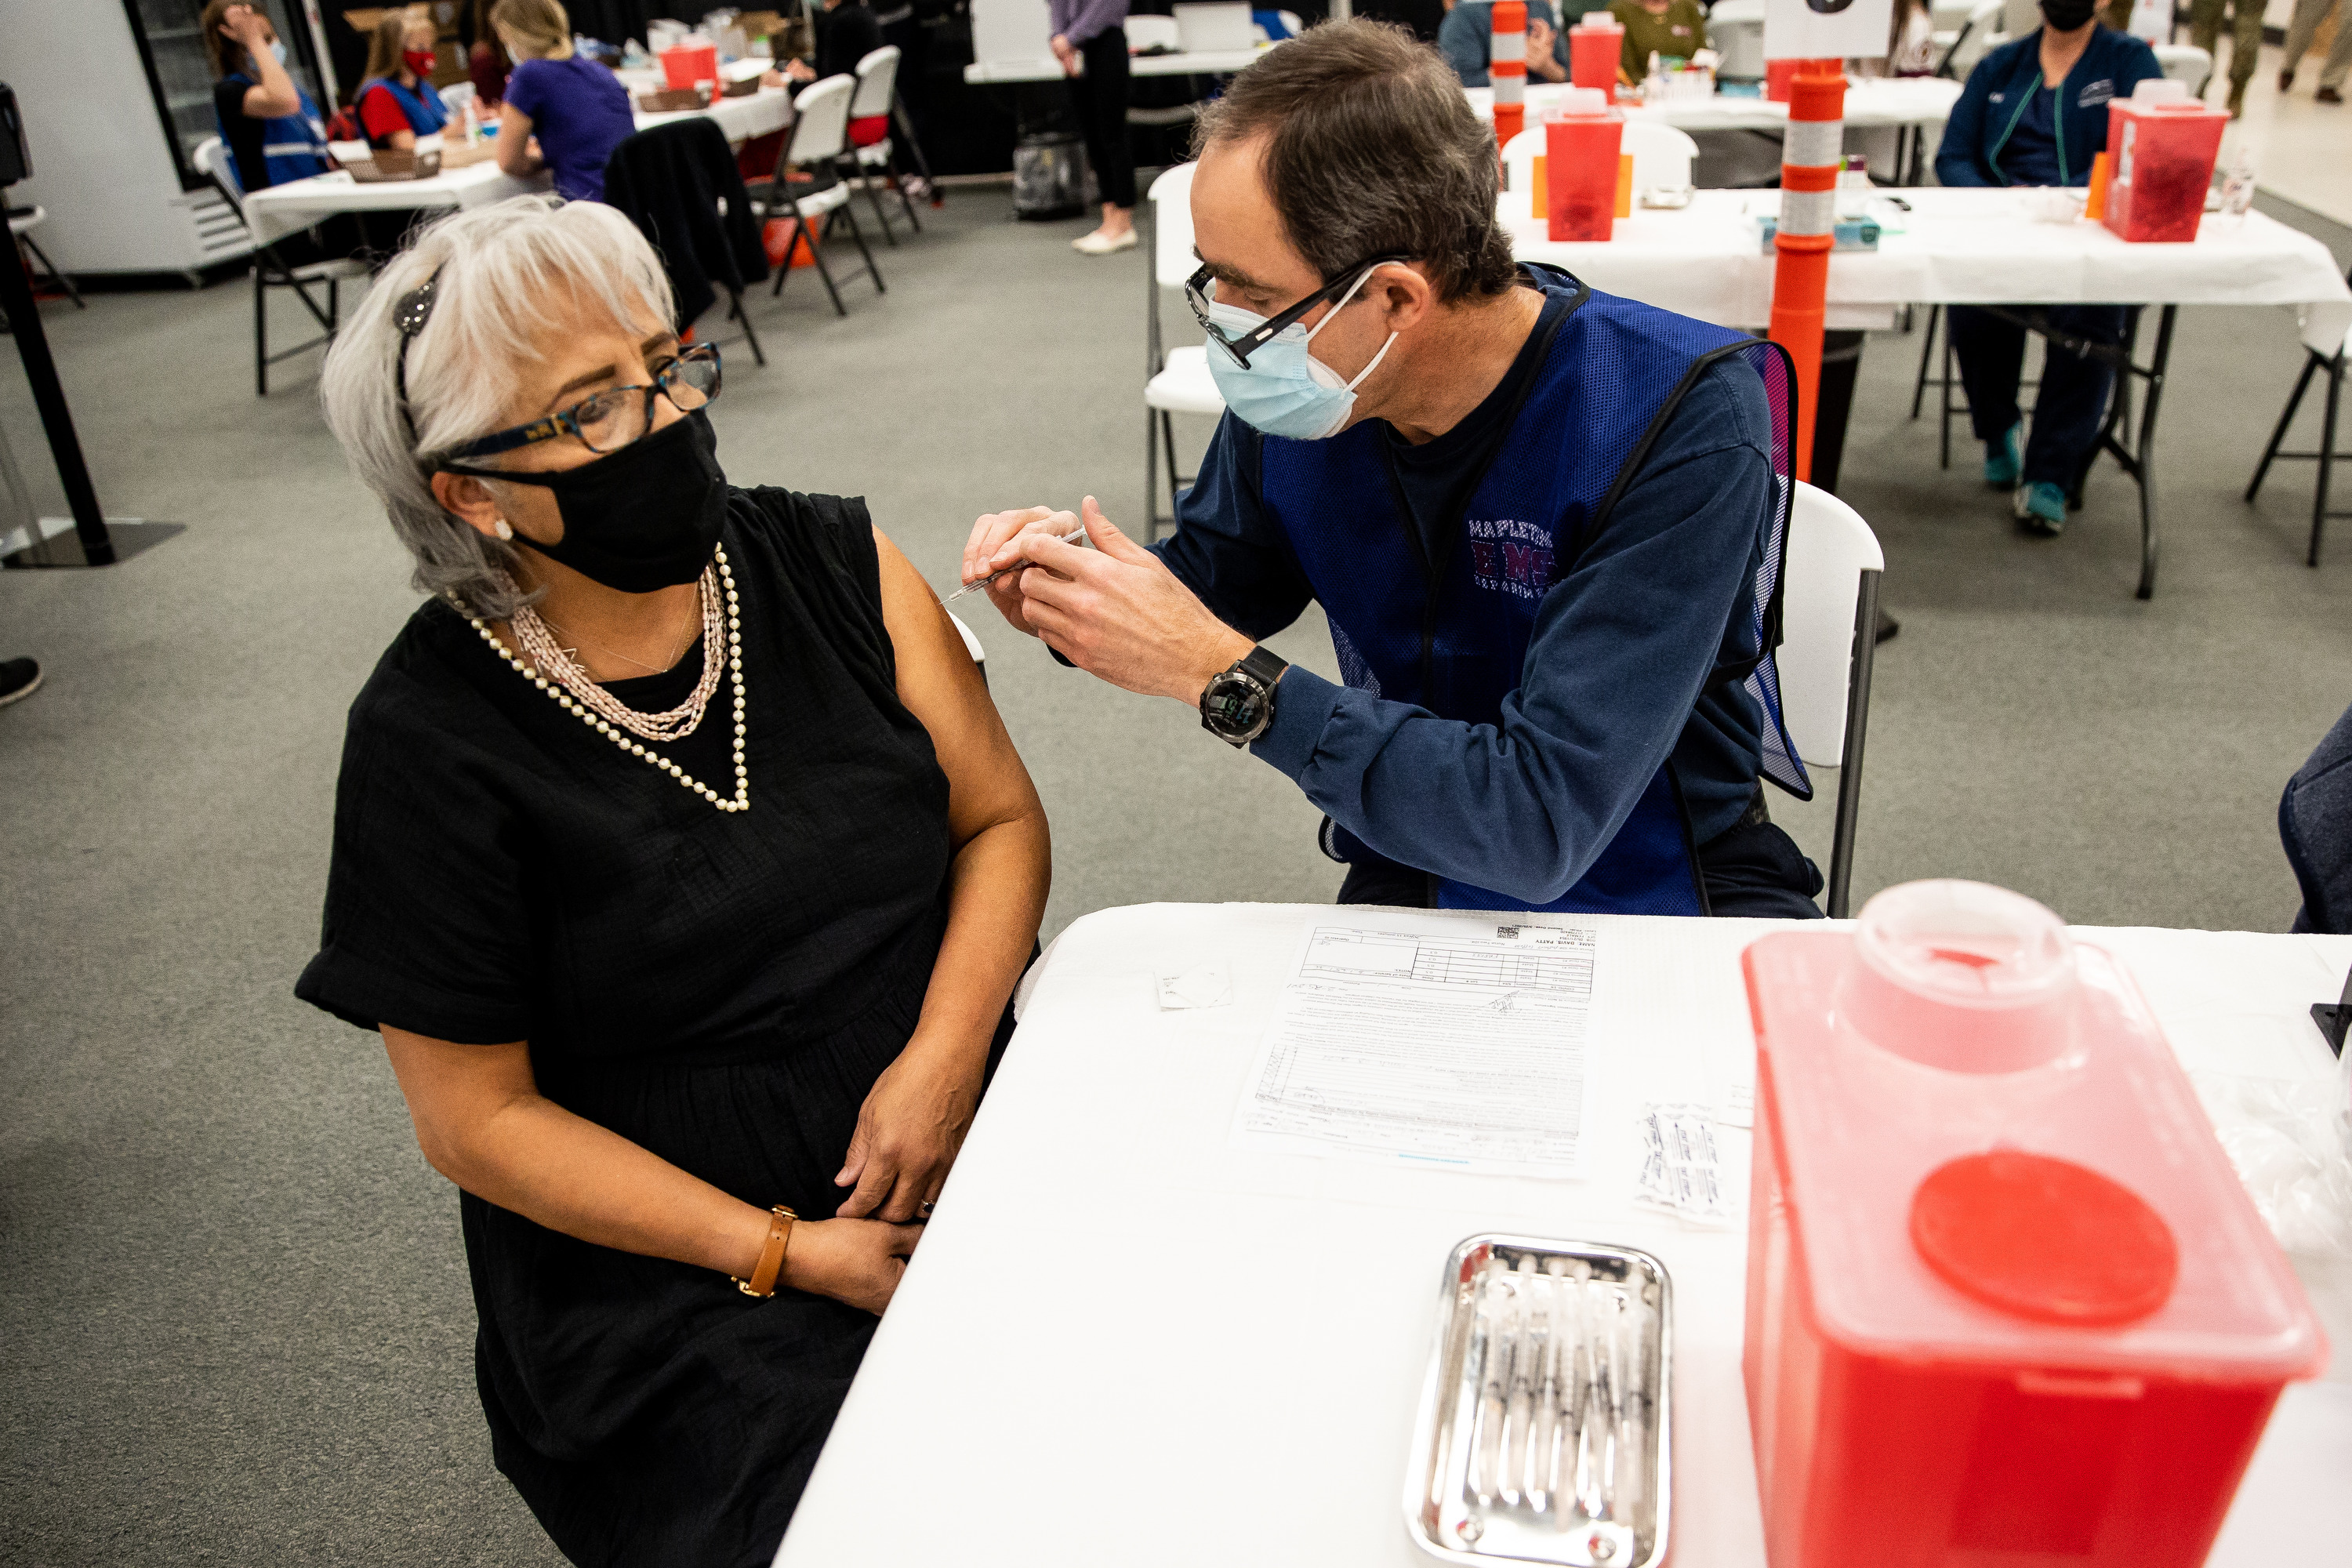 An EMT delivers a COVID-19 vaccination to a woman in Spanish Fork.